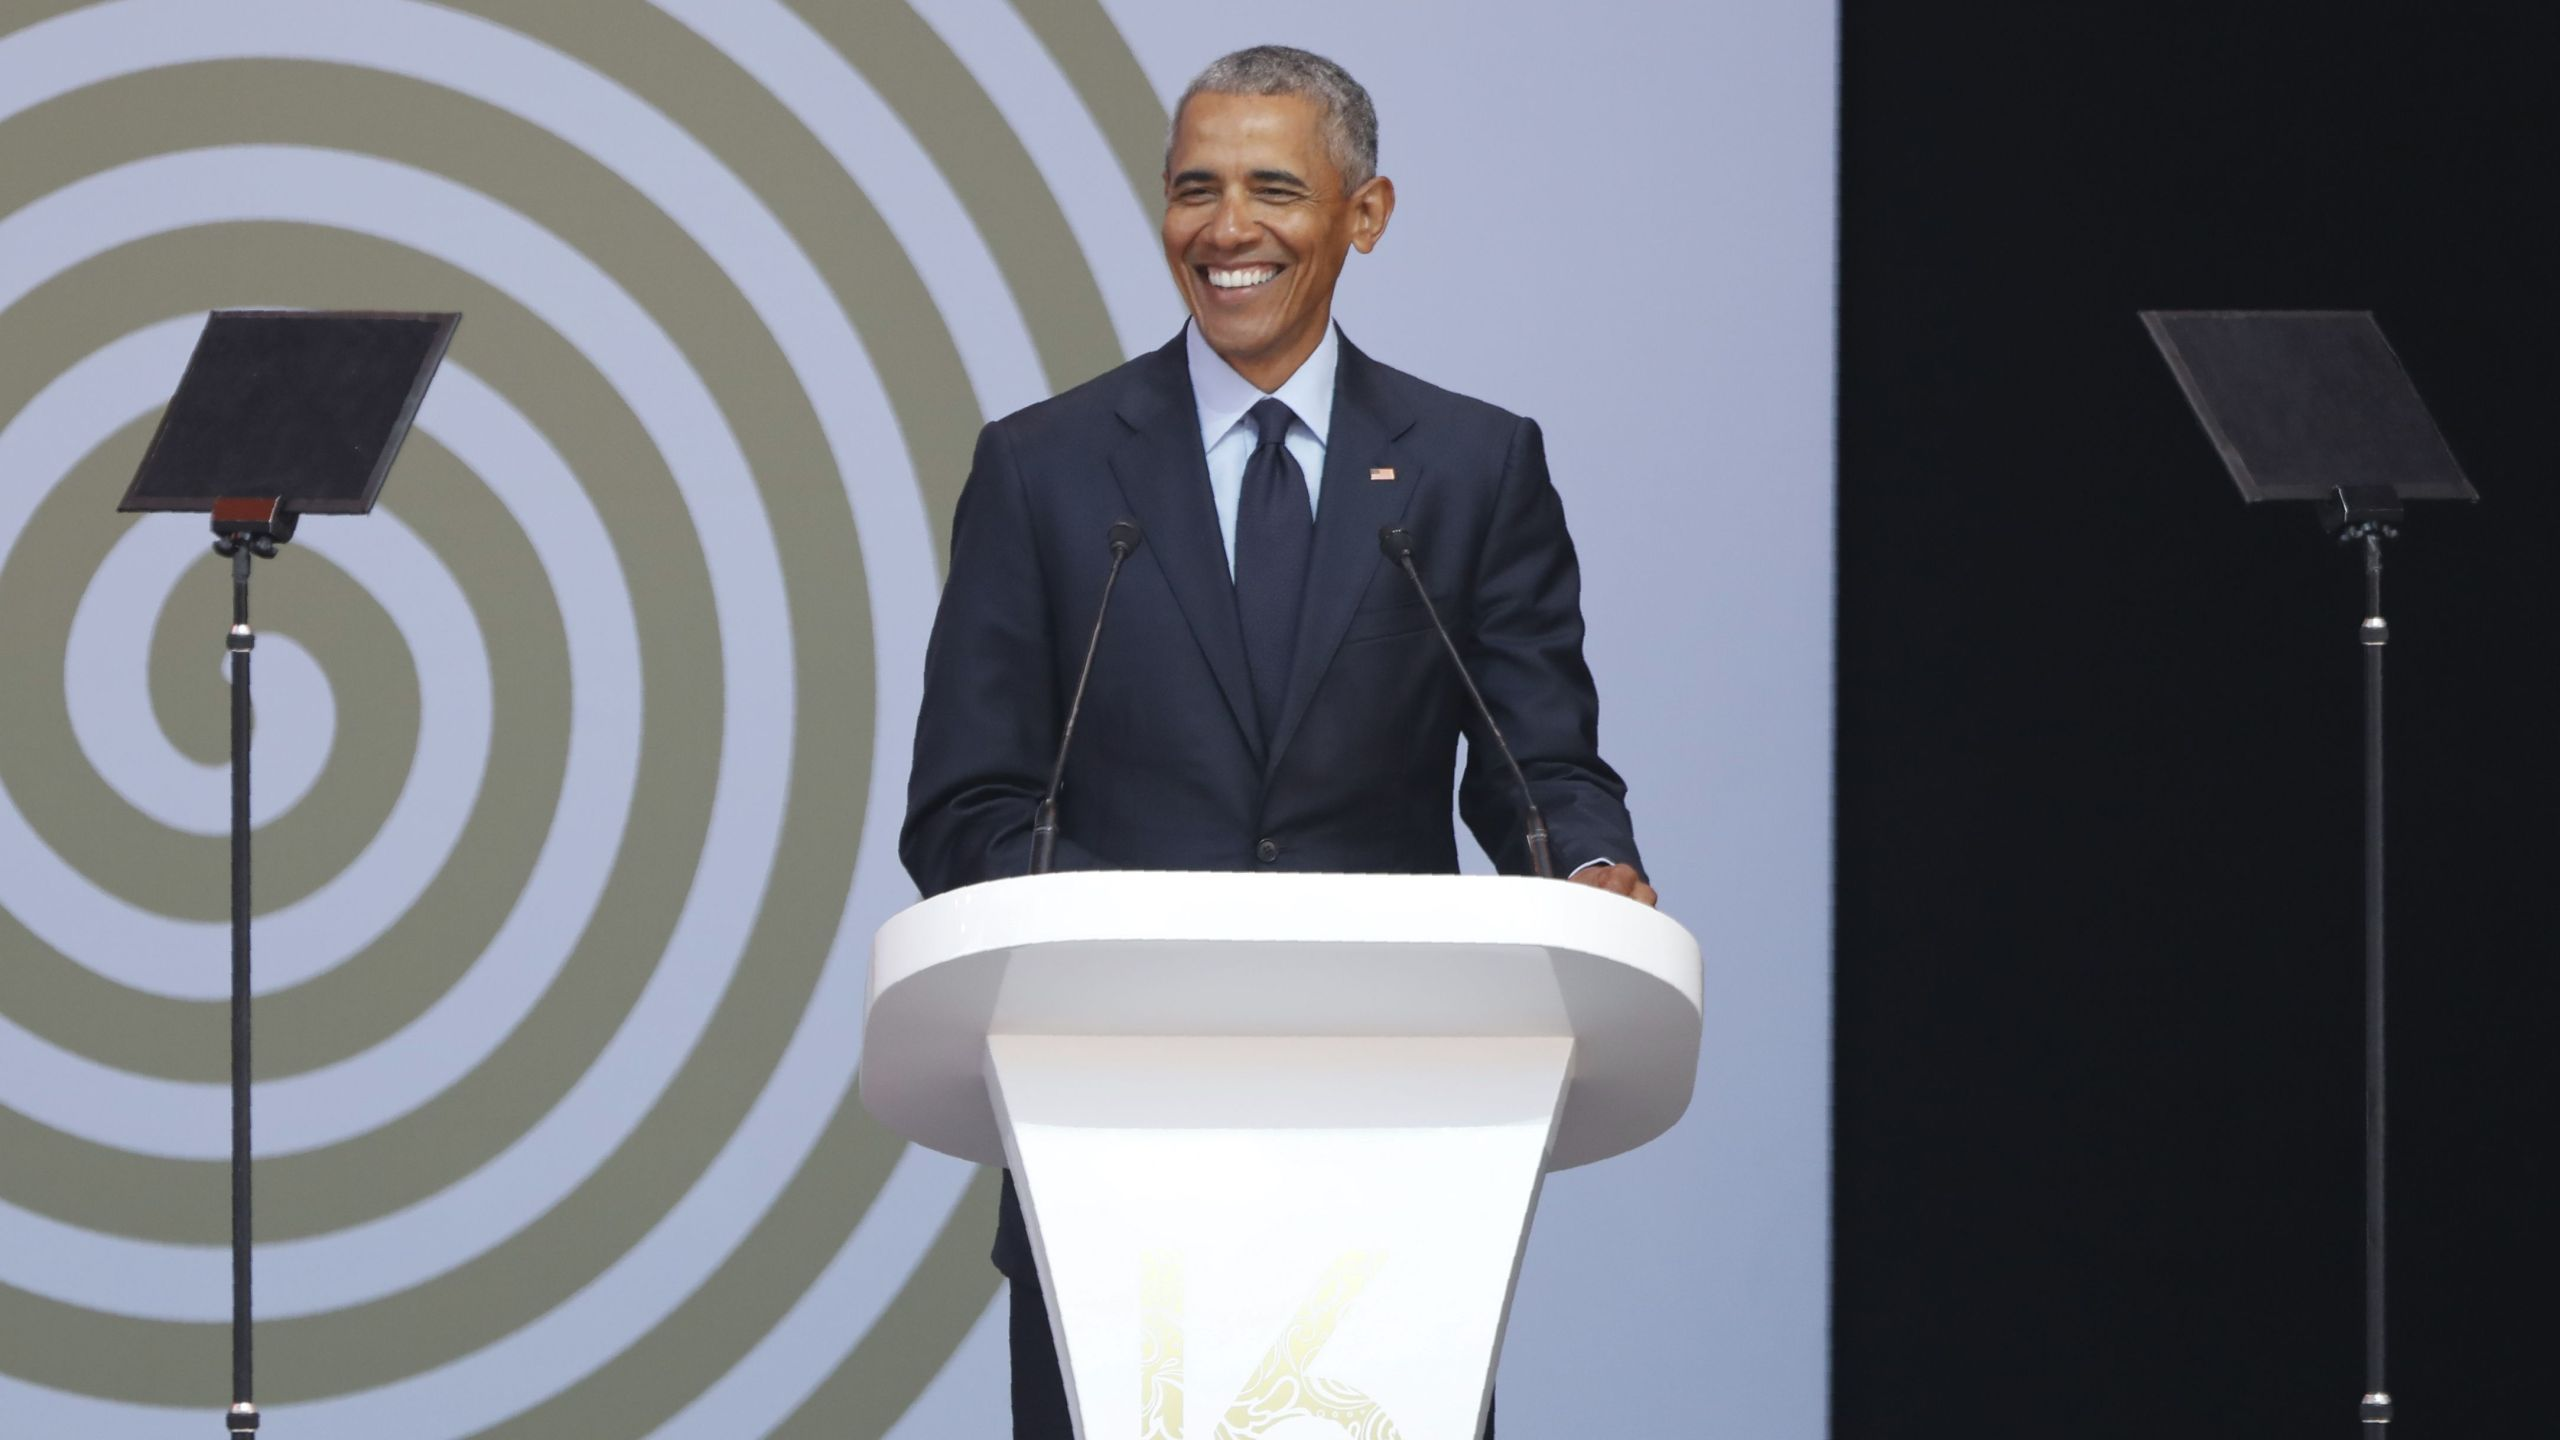 Former President Barack Obama speaks during the 2018 Nelson Mandela Annual Lecture in Johannesburg on July 17, 2018. (Credit: Marco Longari / AFP / Getty Images)